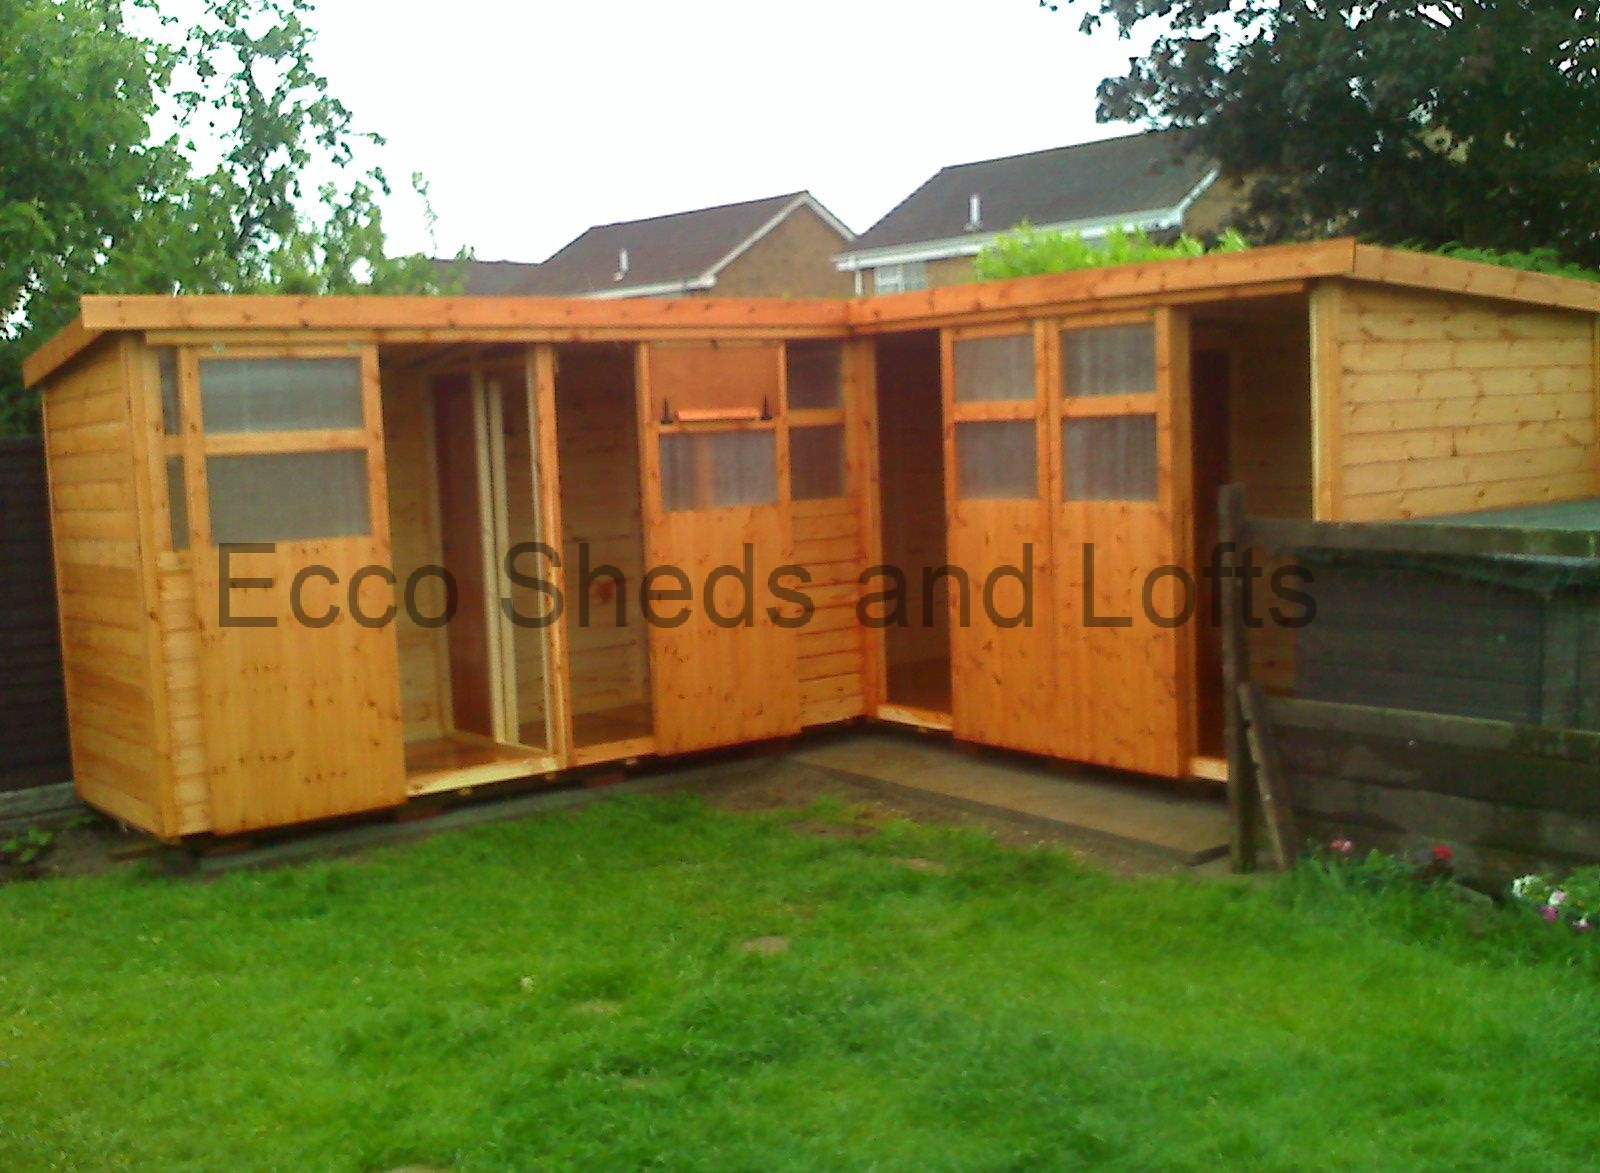 L shape lofts ecco sheds and pigeon lofts for L shaped shed